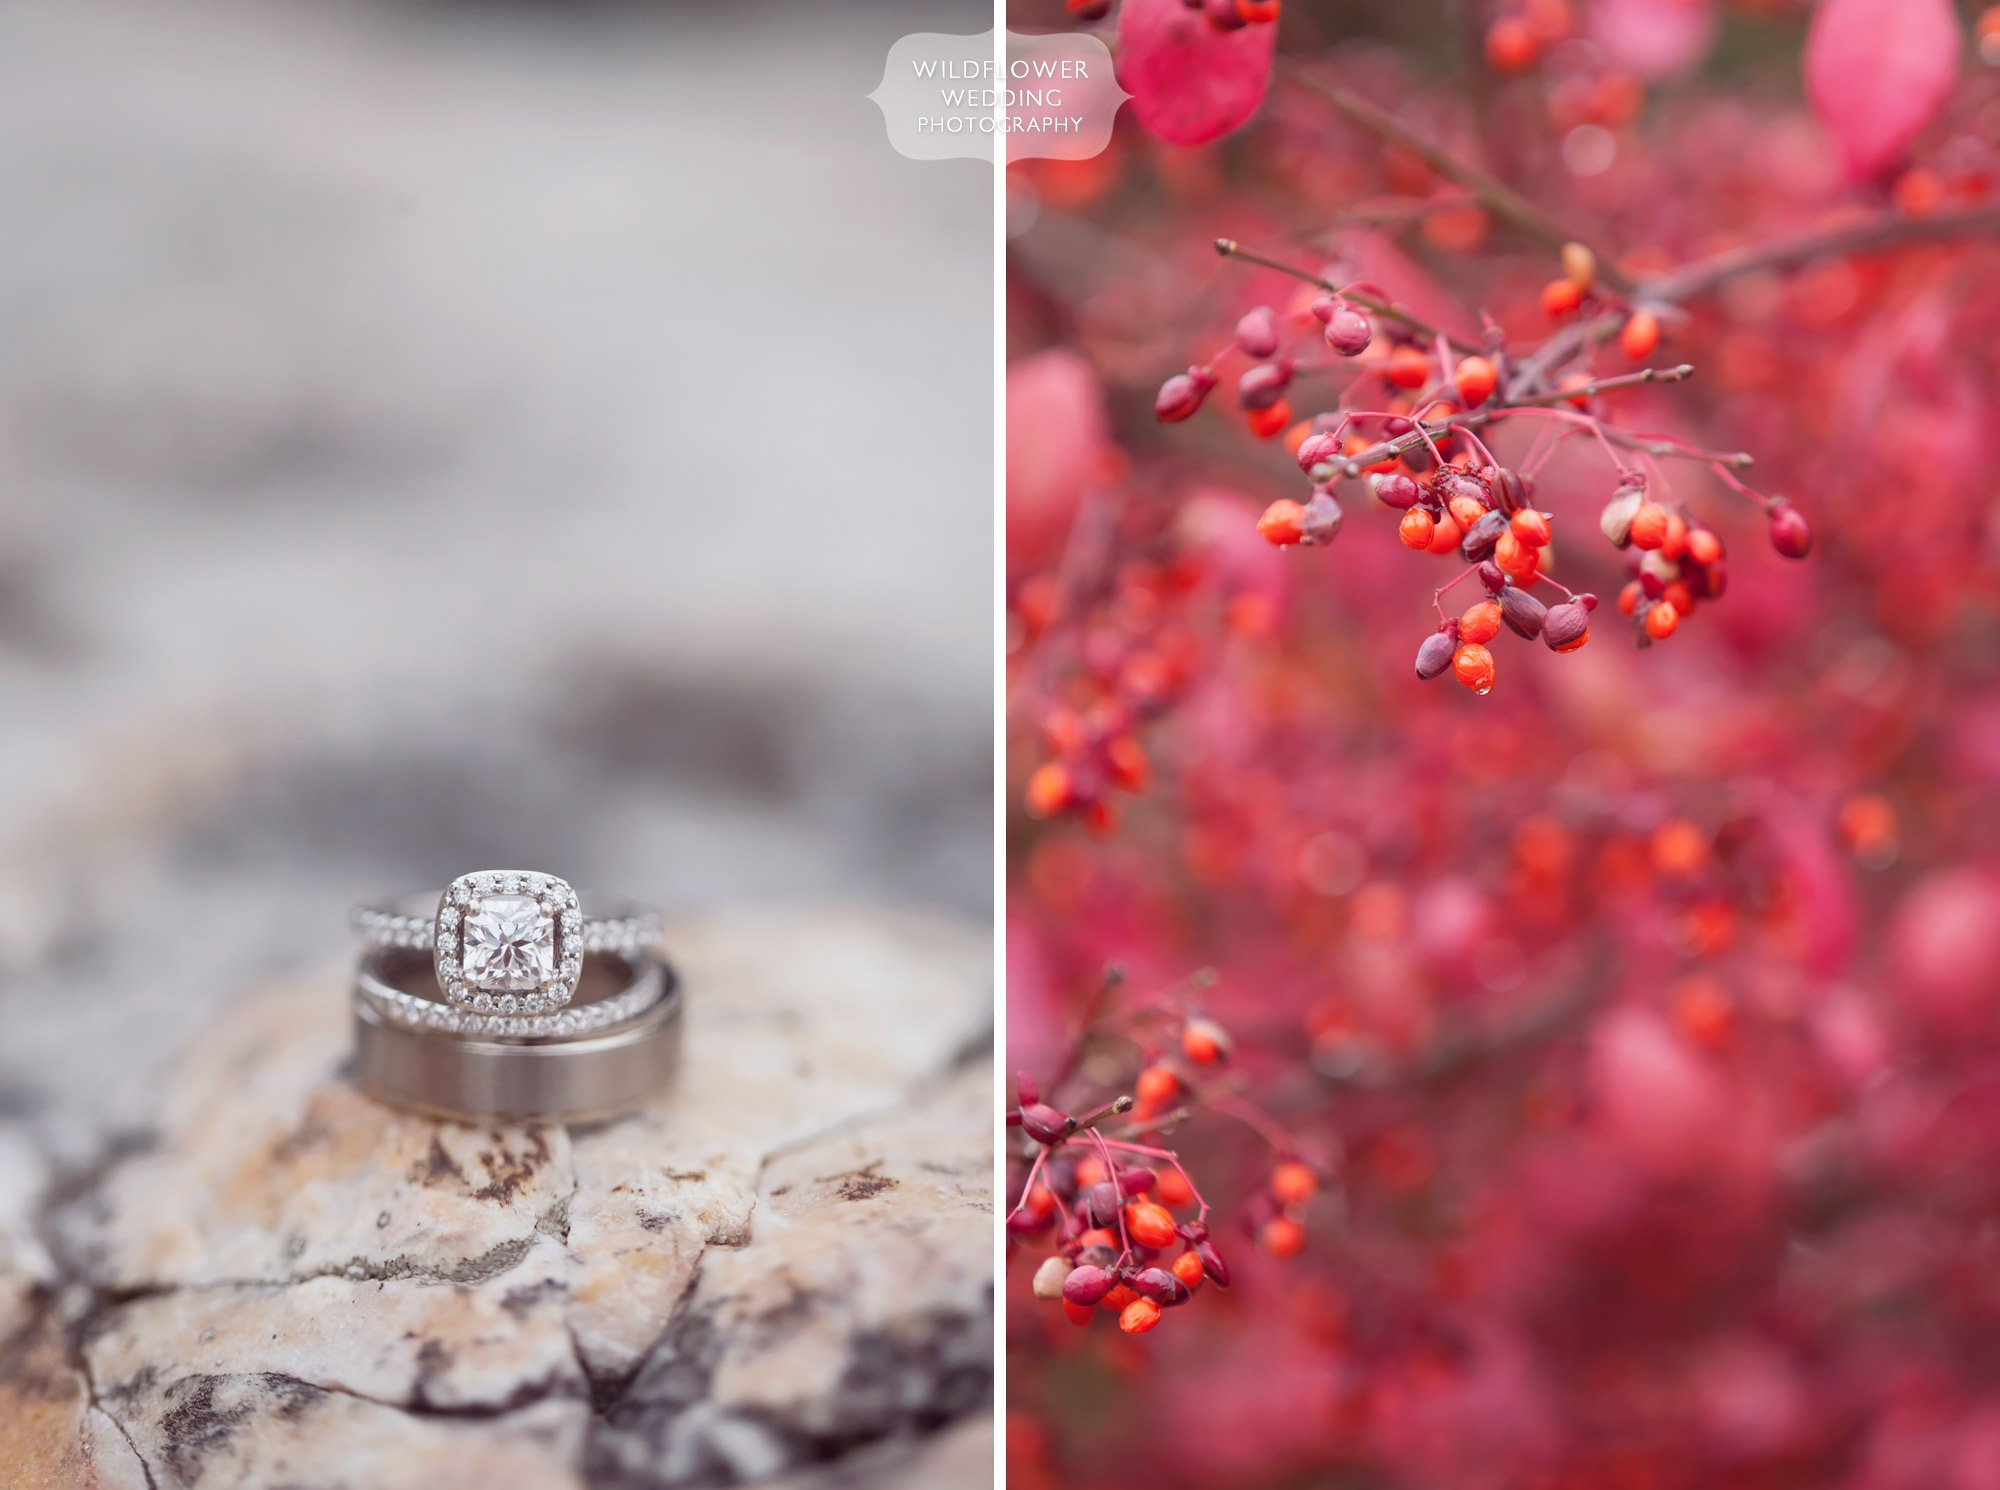 Artistic wedding photo of the rings on granite on the Blue Bell Farm in Fayette, MO.